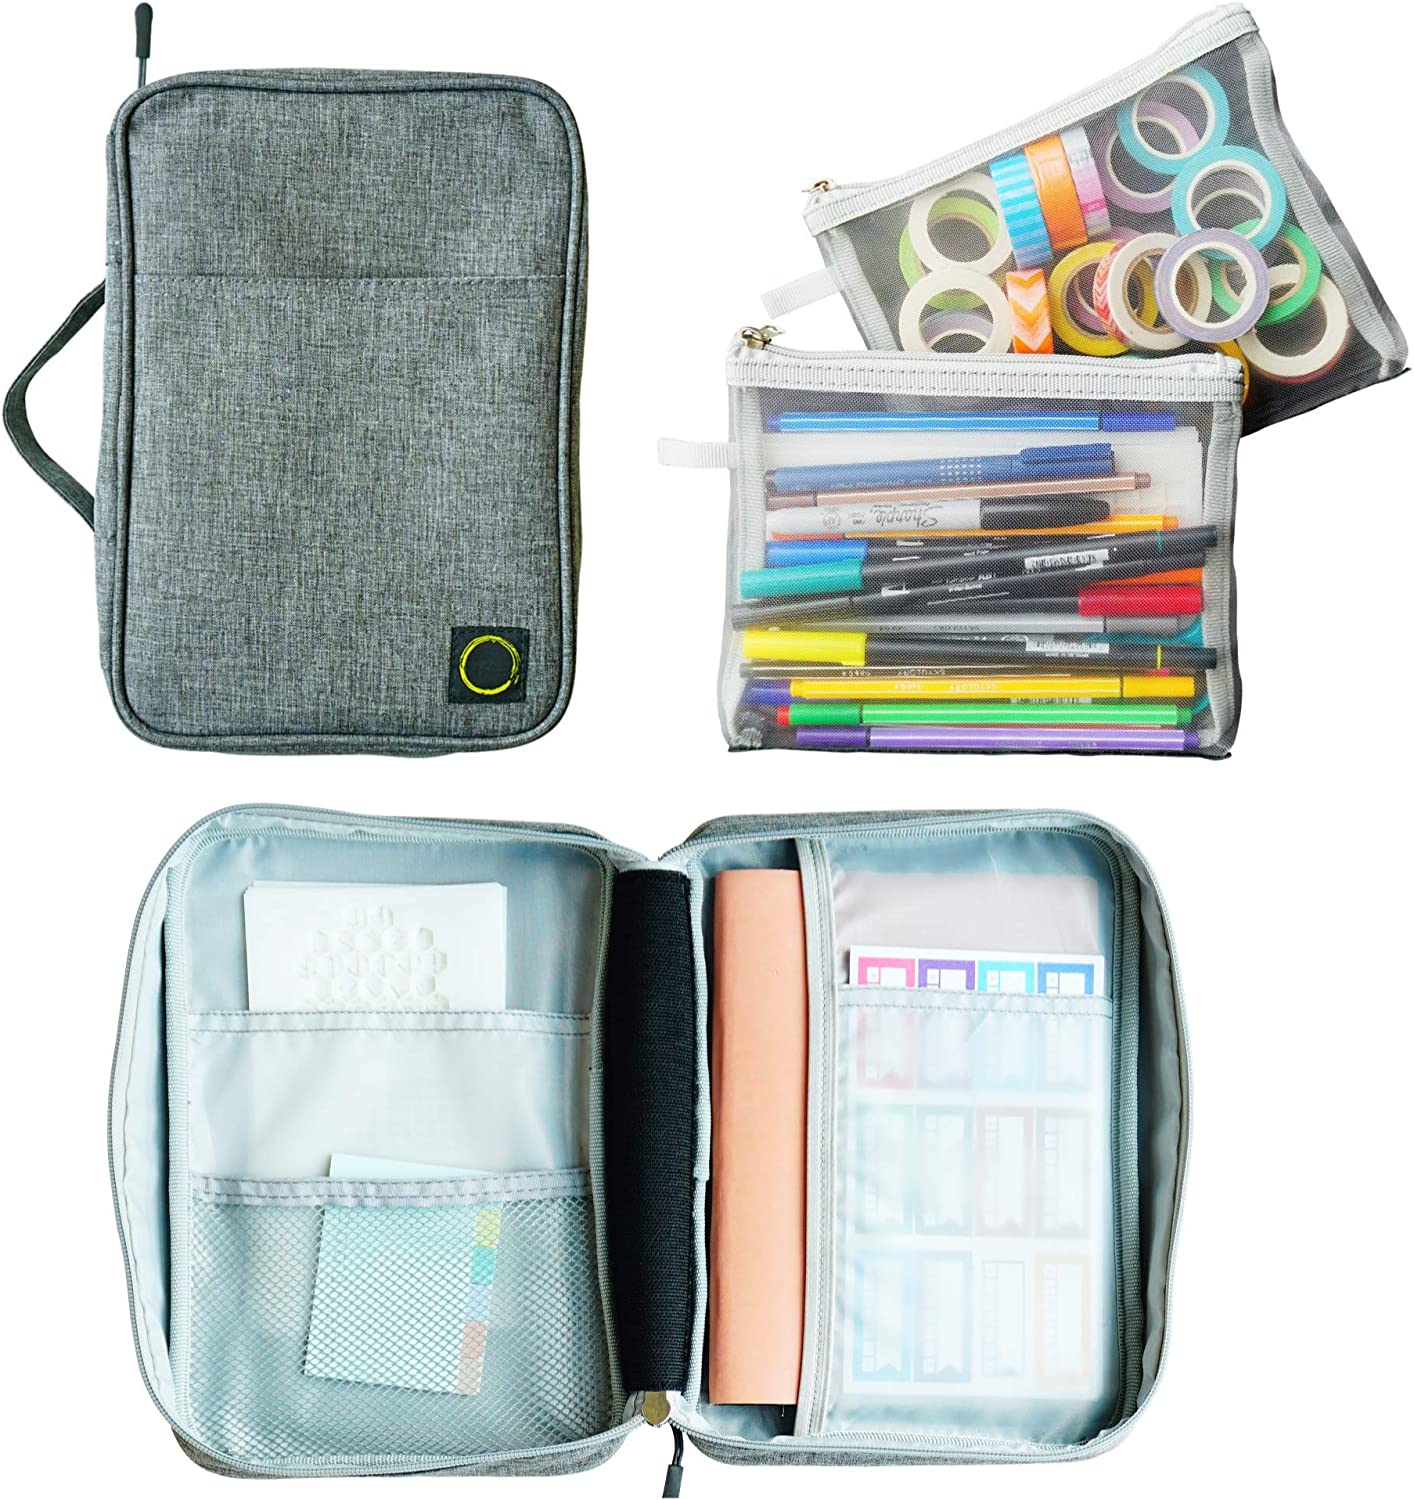 Journal Supplies Storage Case (Gray - Medium) - Custom Travel Organizer Holder for A5 Planner, Pens, Journal Supplies and Accessories (Case Only - Supplies Not Included) : Office Products